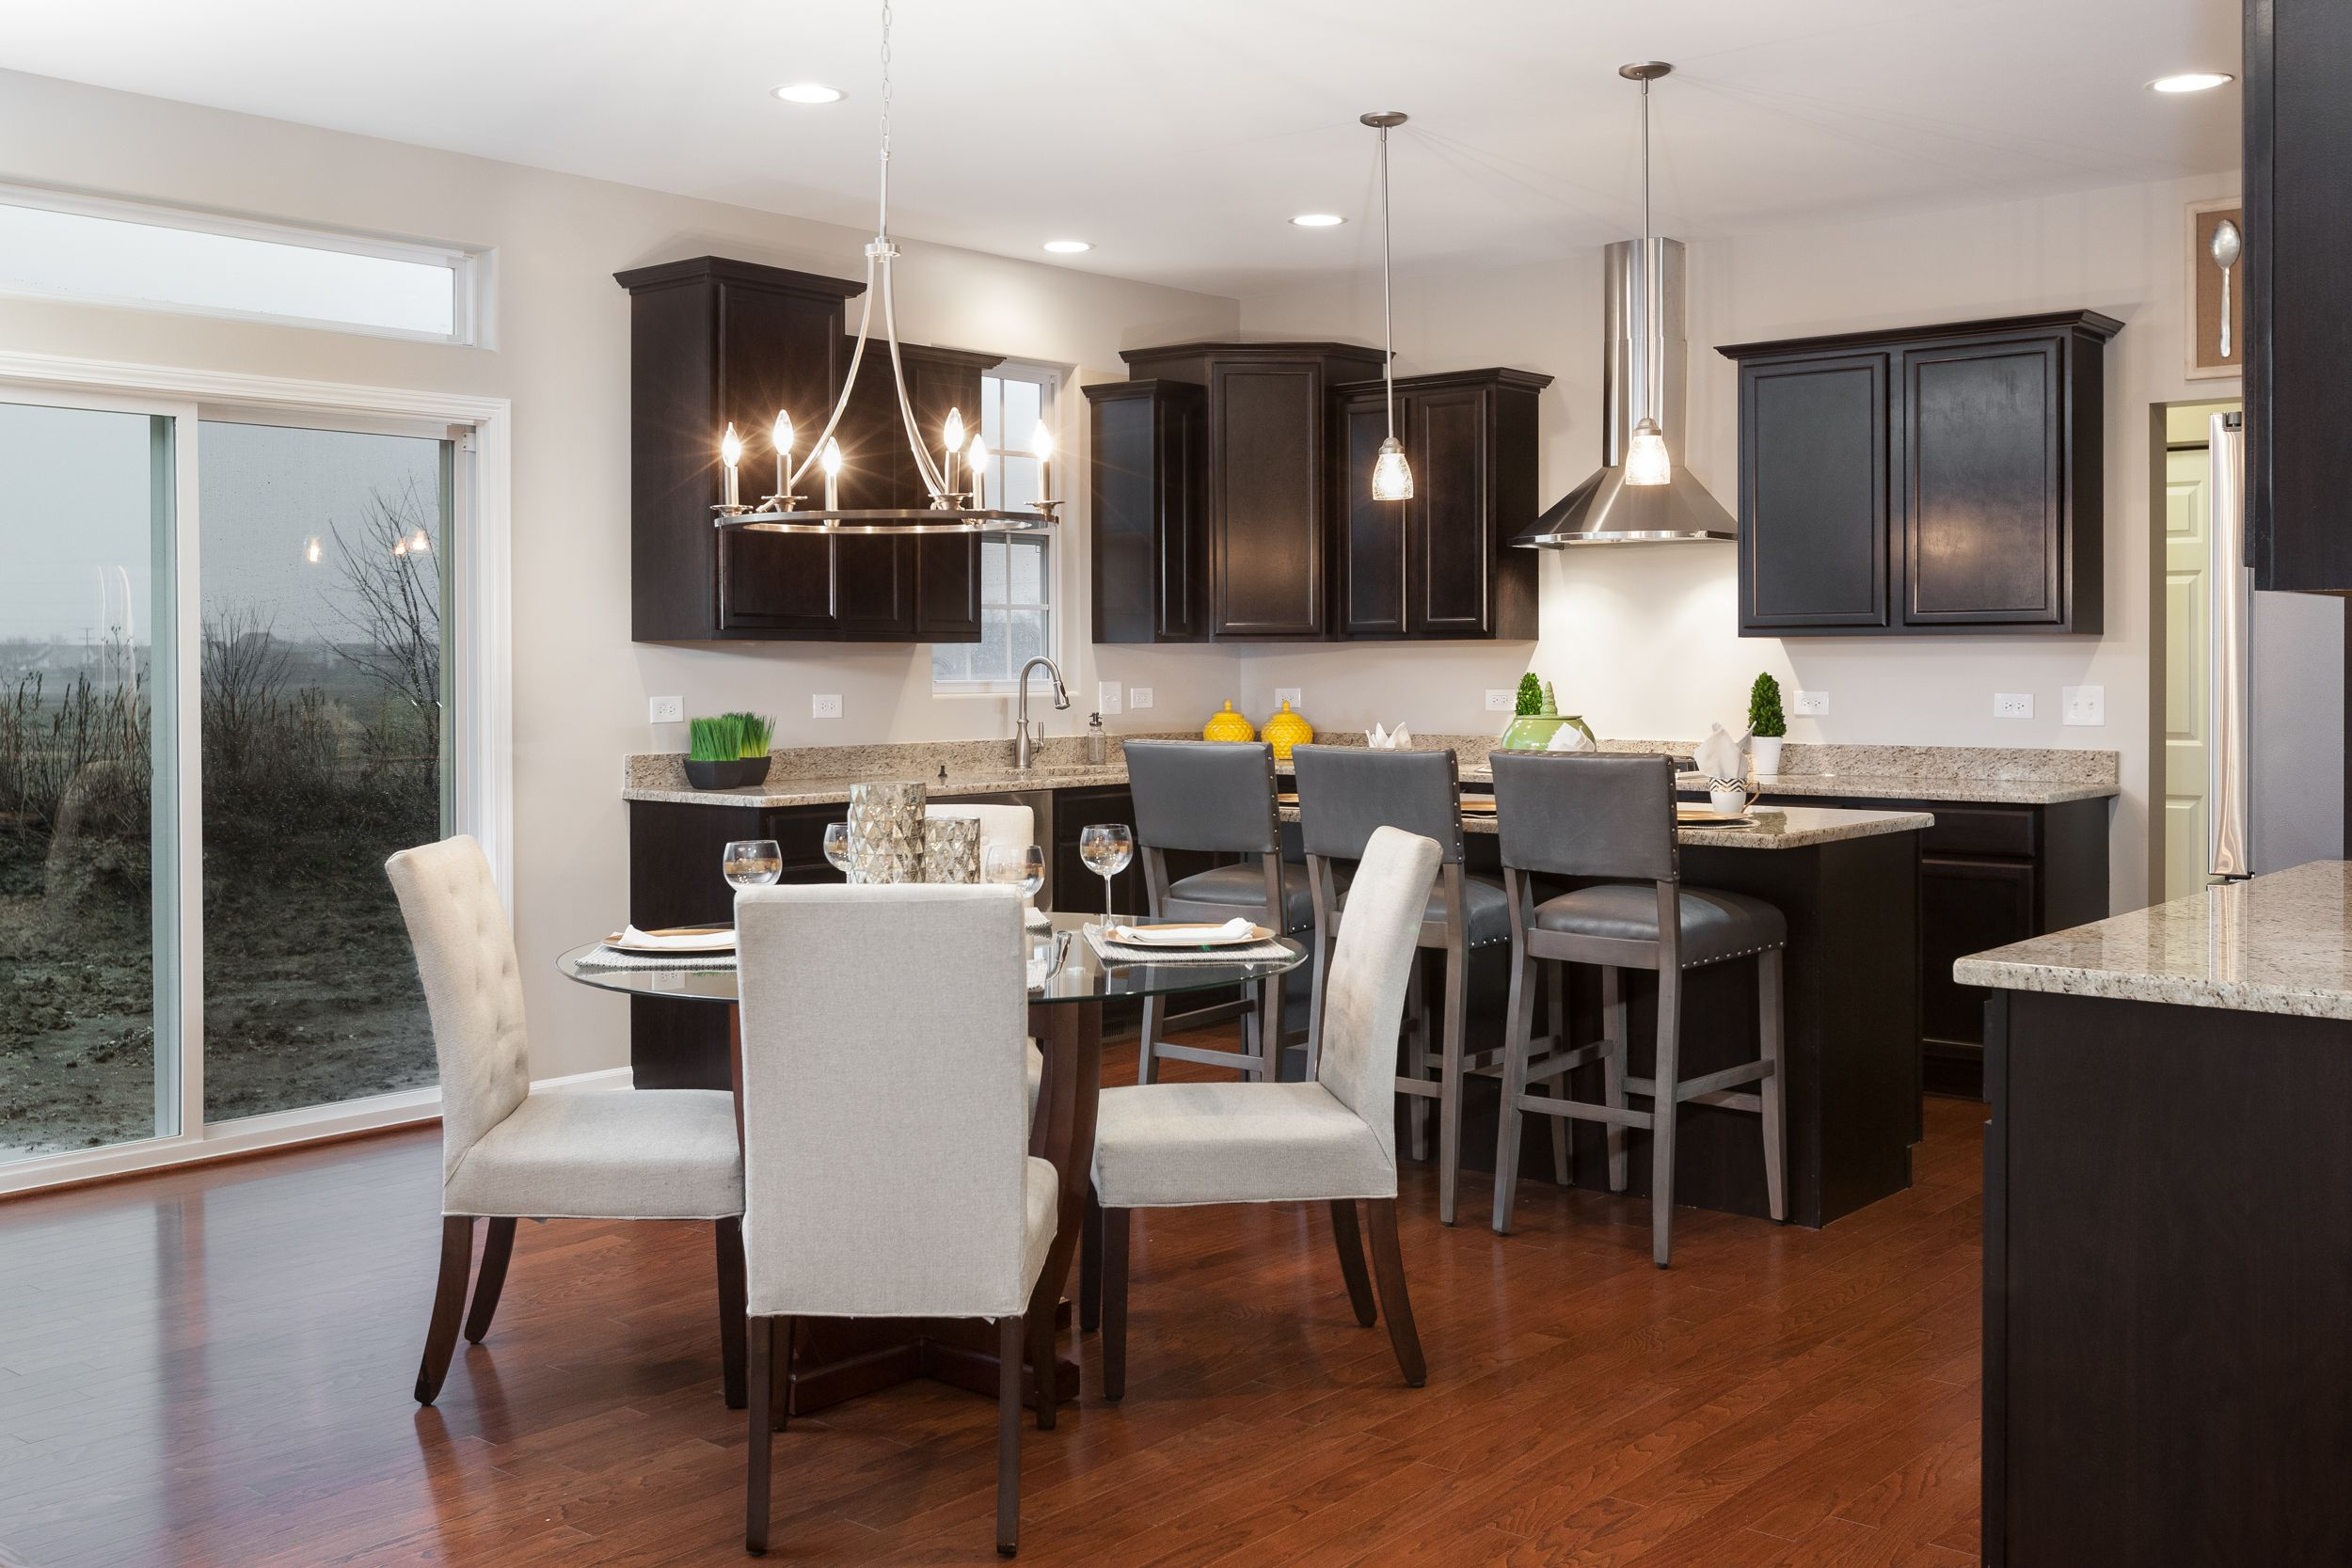 Kitchen featured in The Sycamore By Meadowbrook Builders in Chicago, IL